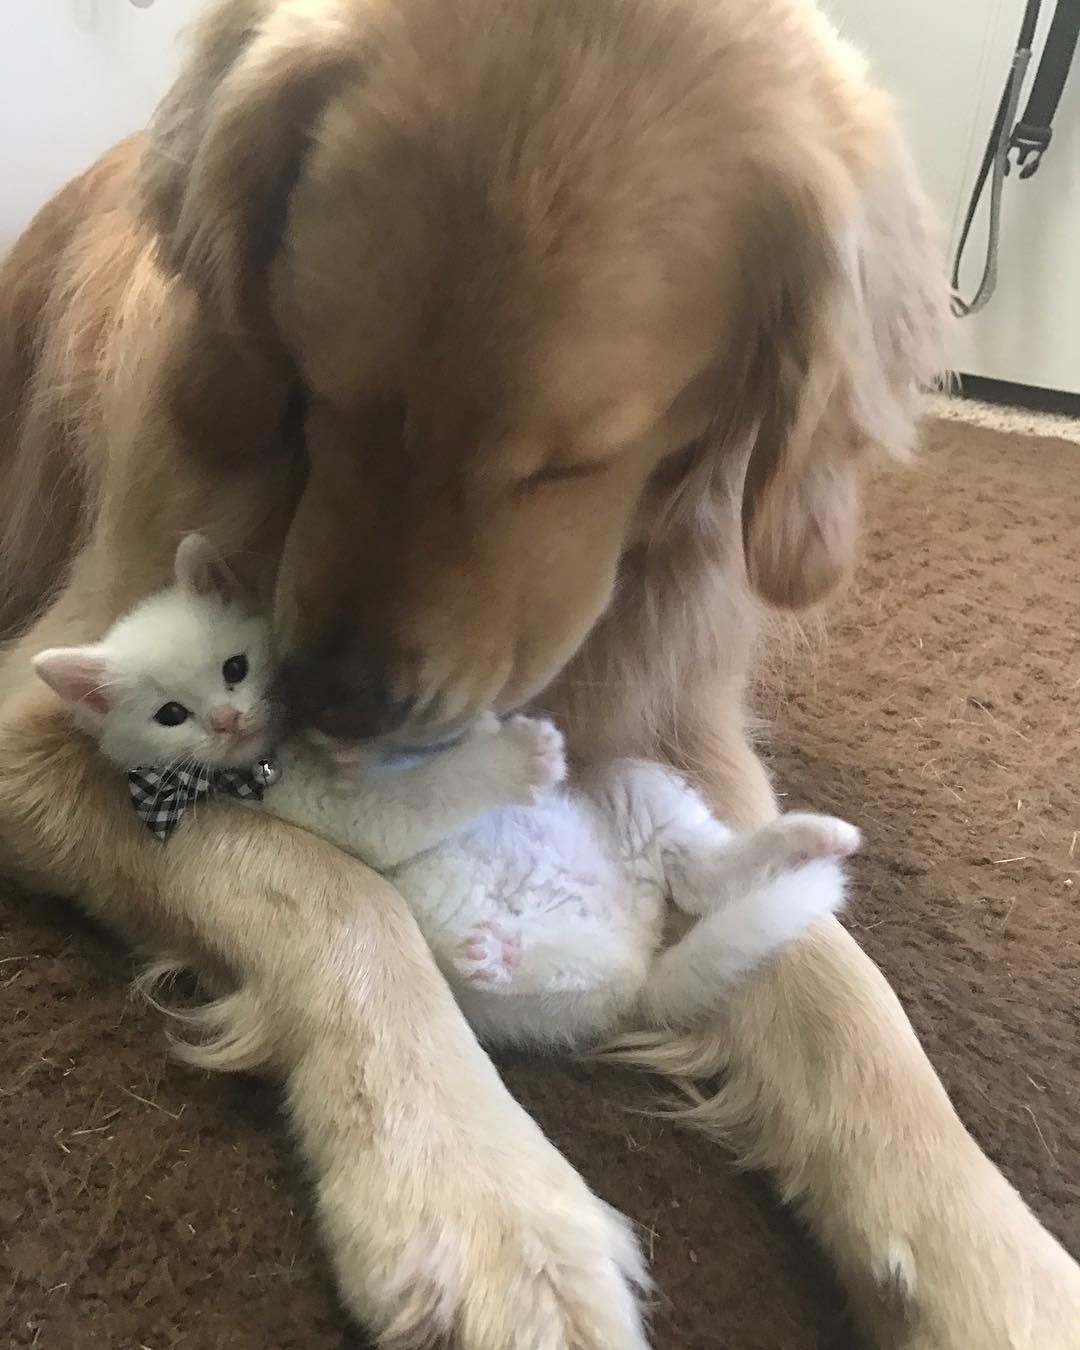 Plushie Loving Therapy Dog Gets A Real Live Kitten To Cuddle Iheartdogs Com Cute Baby Animals Cute Animals Animals Friendship